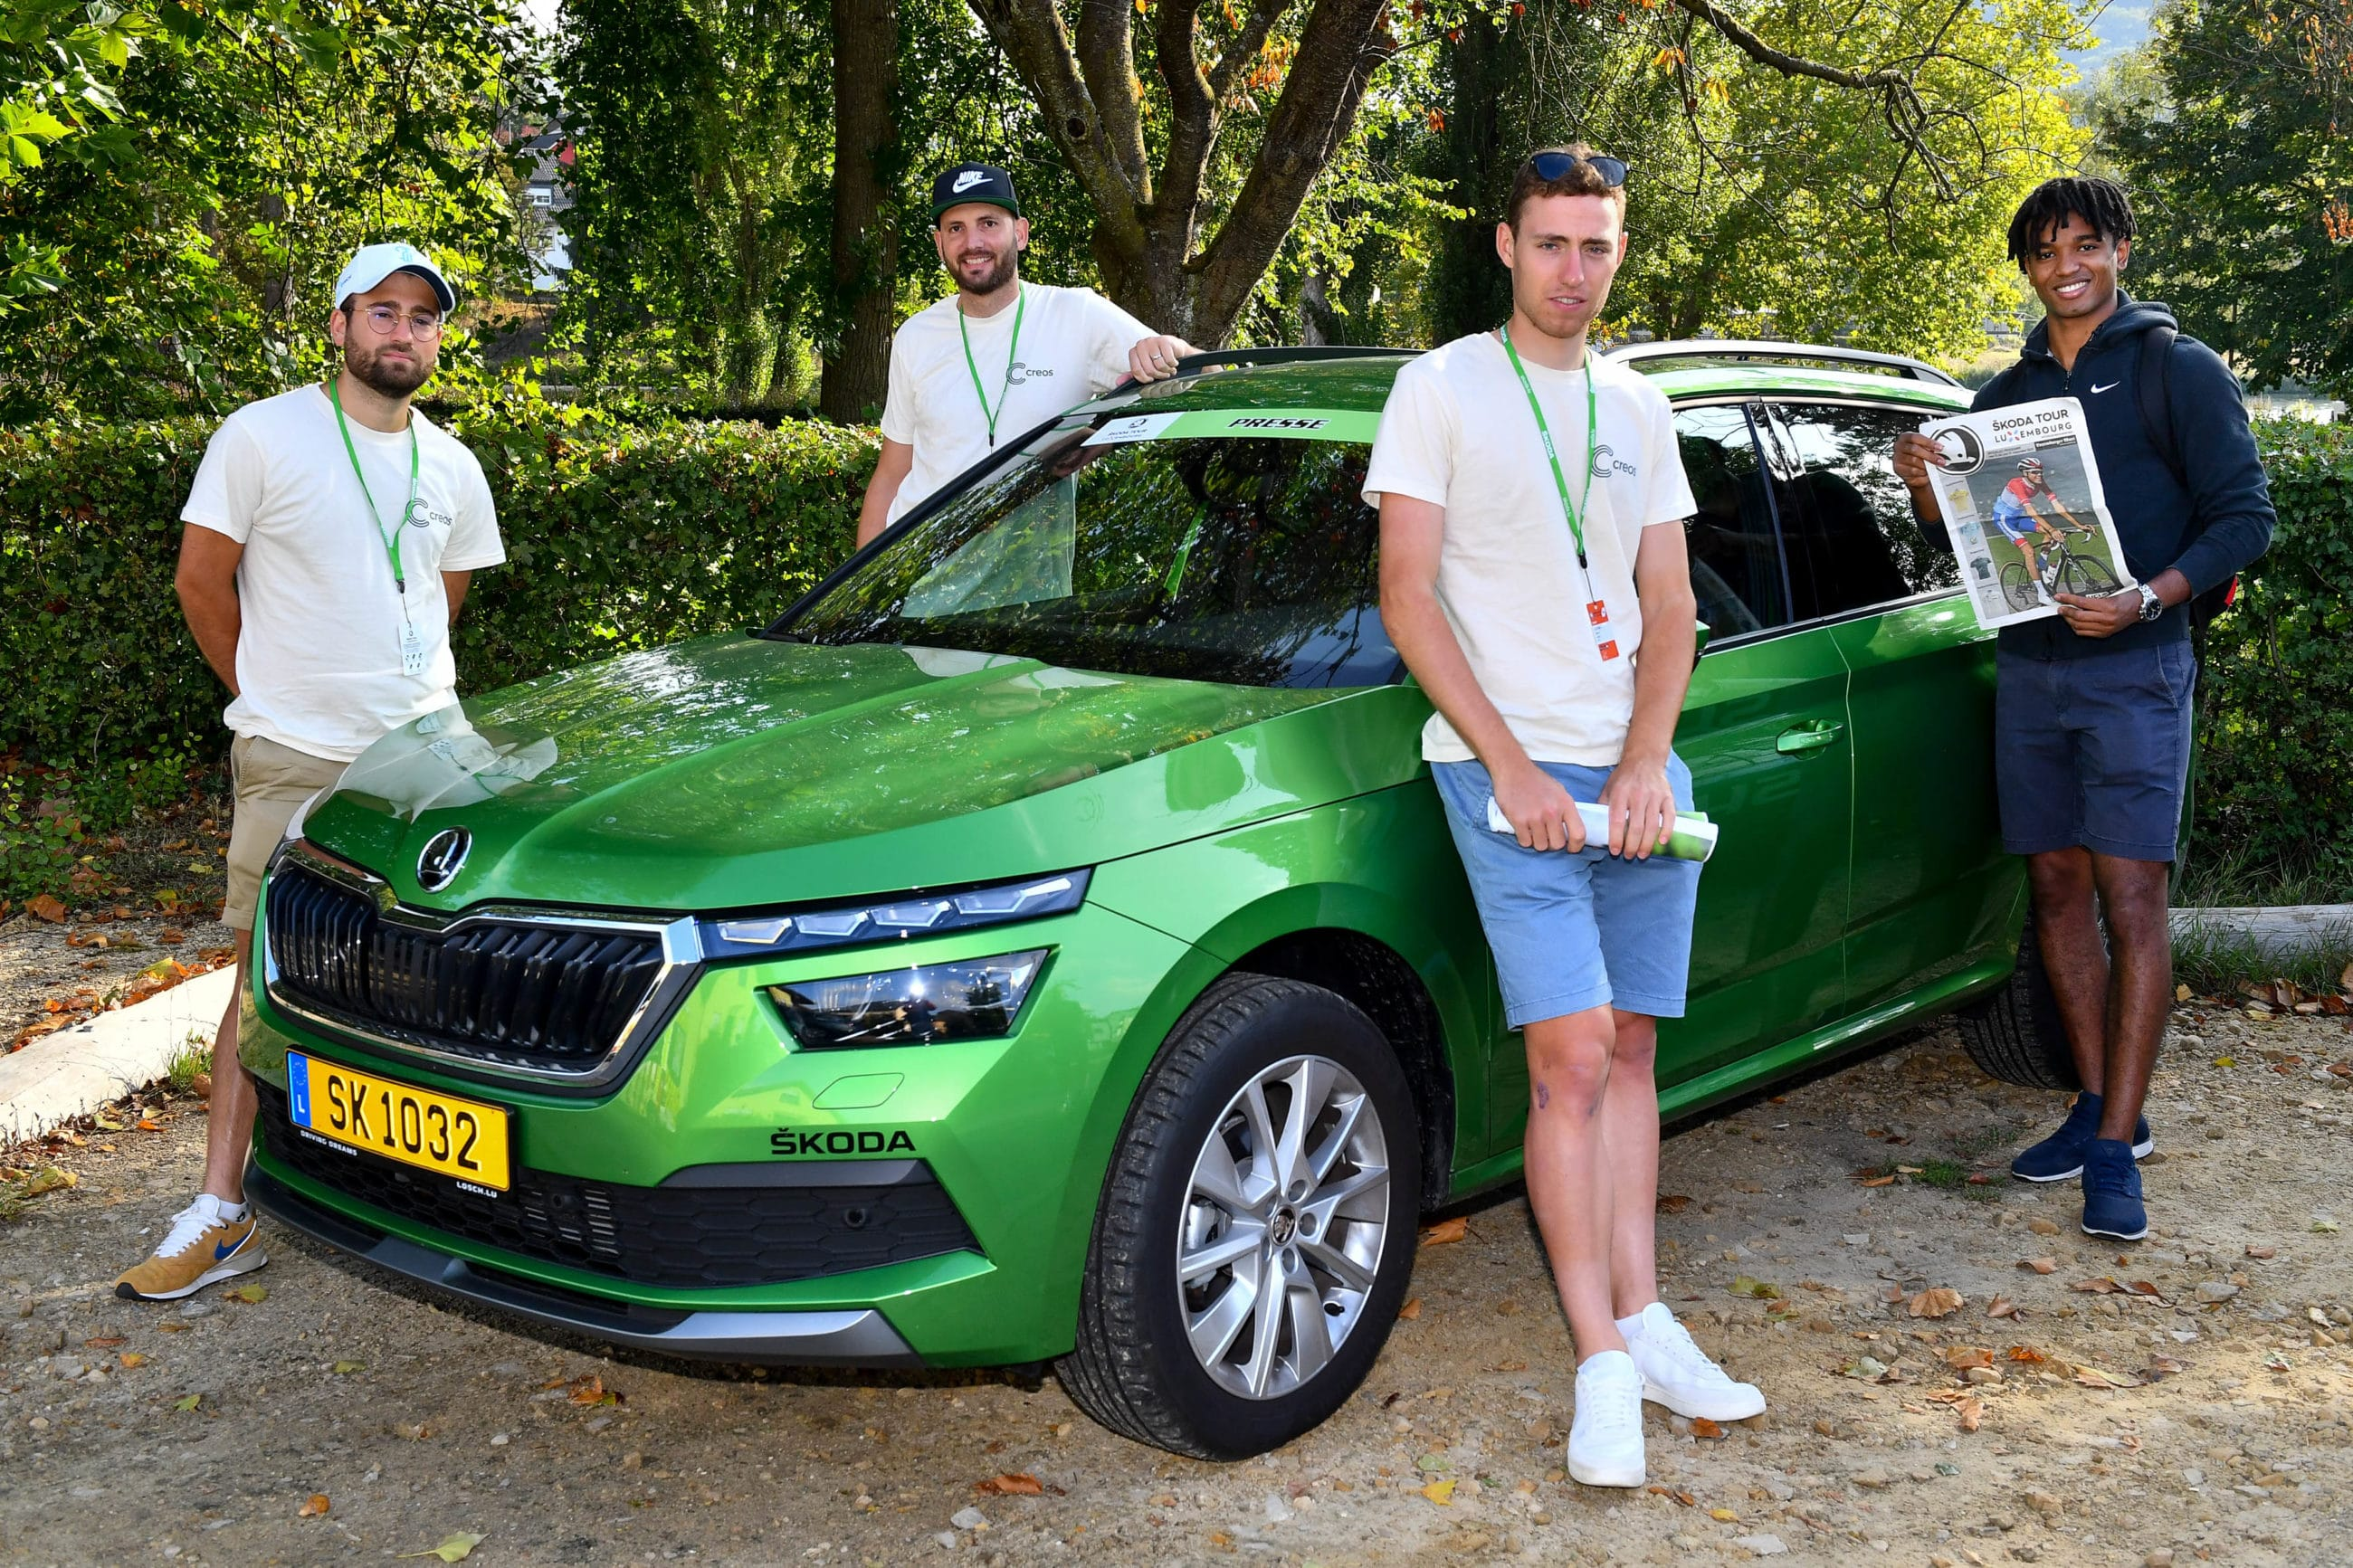 LUNEX students participating in the Skoda Tour de Luxembourg